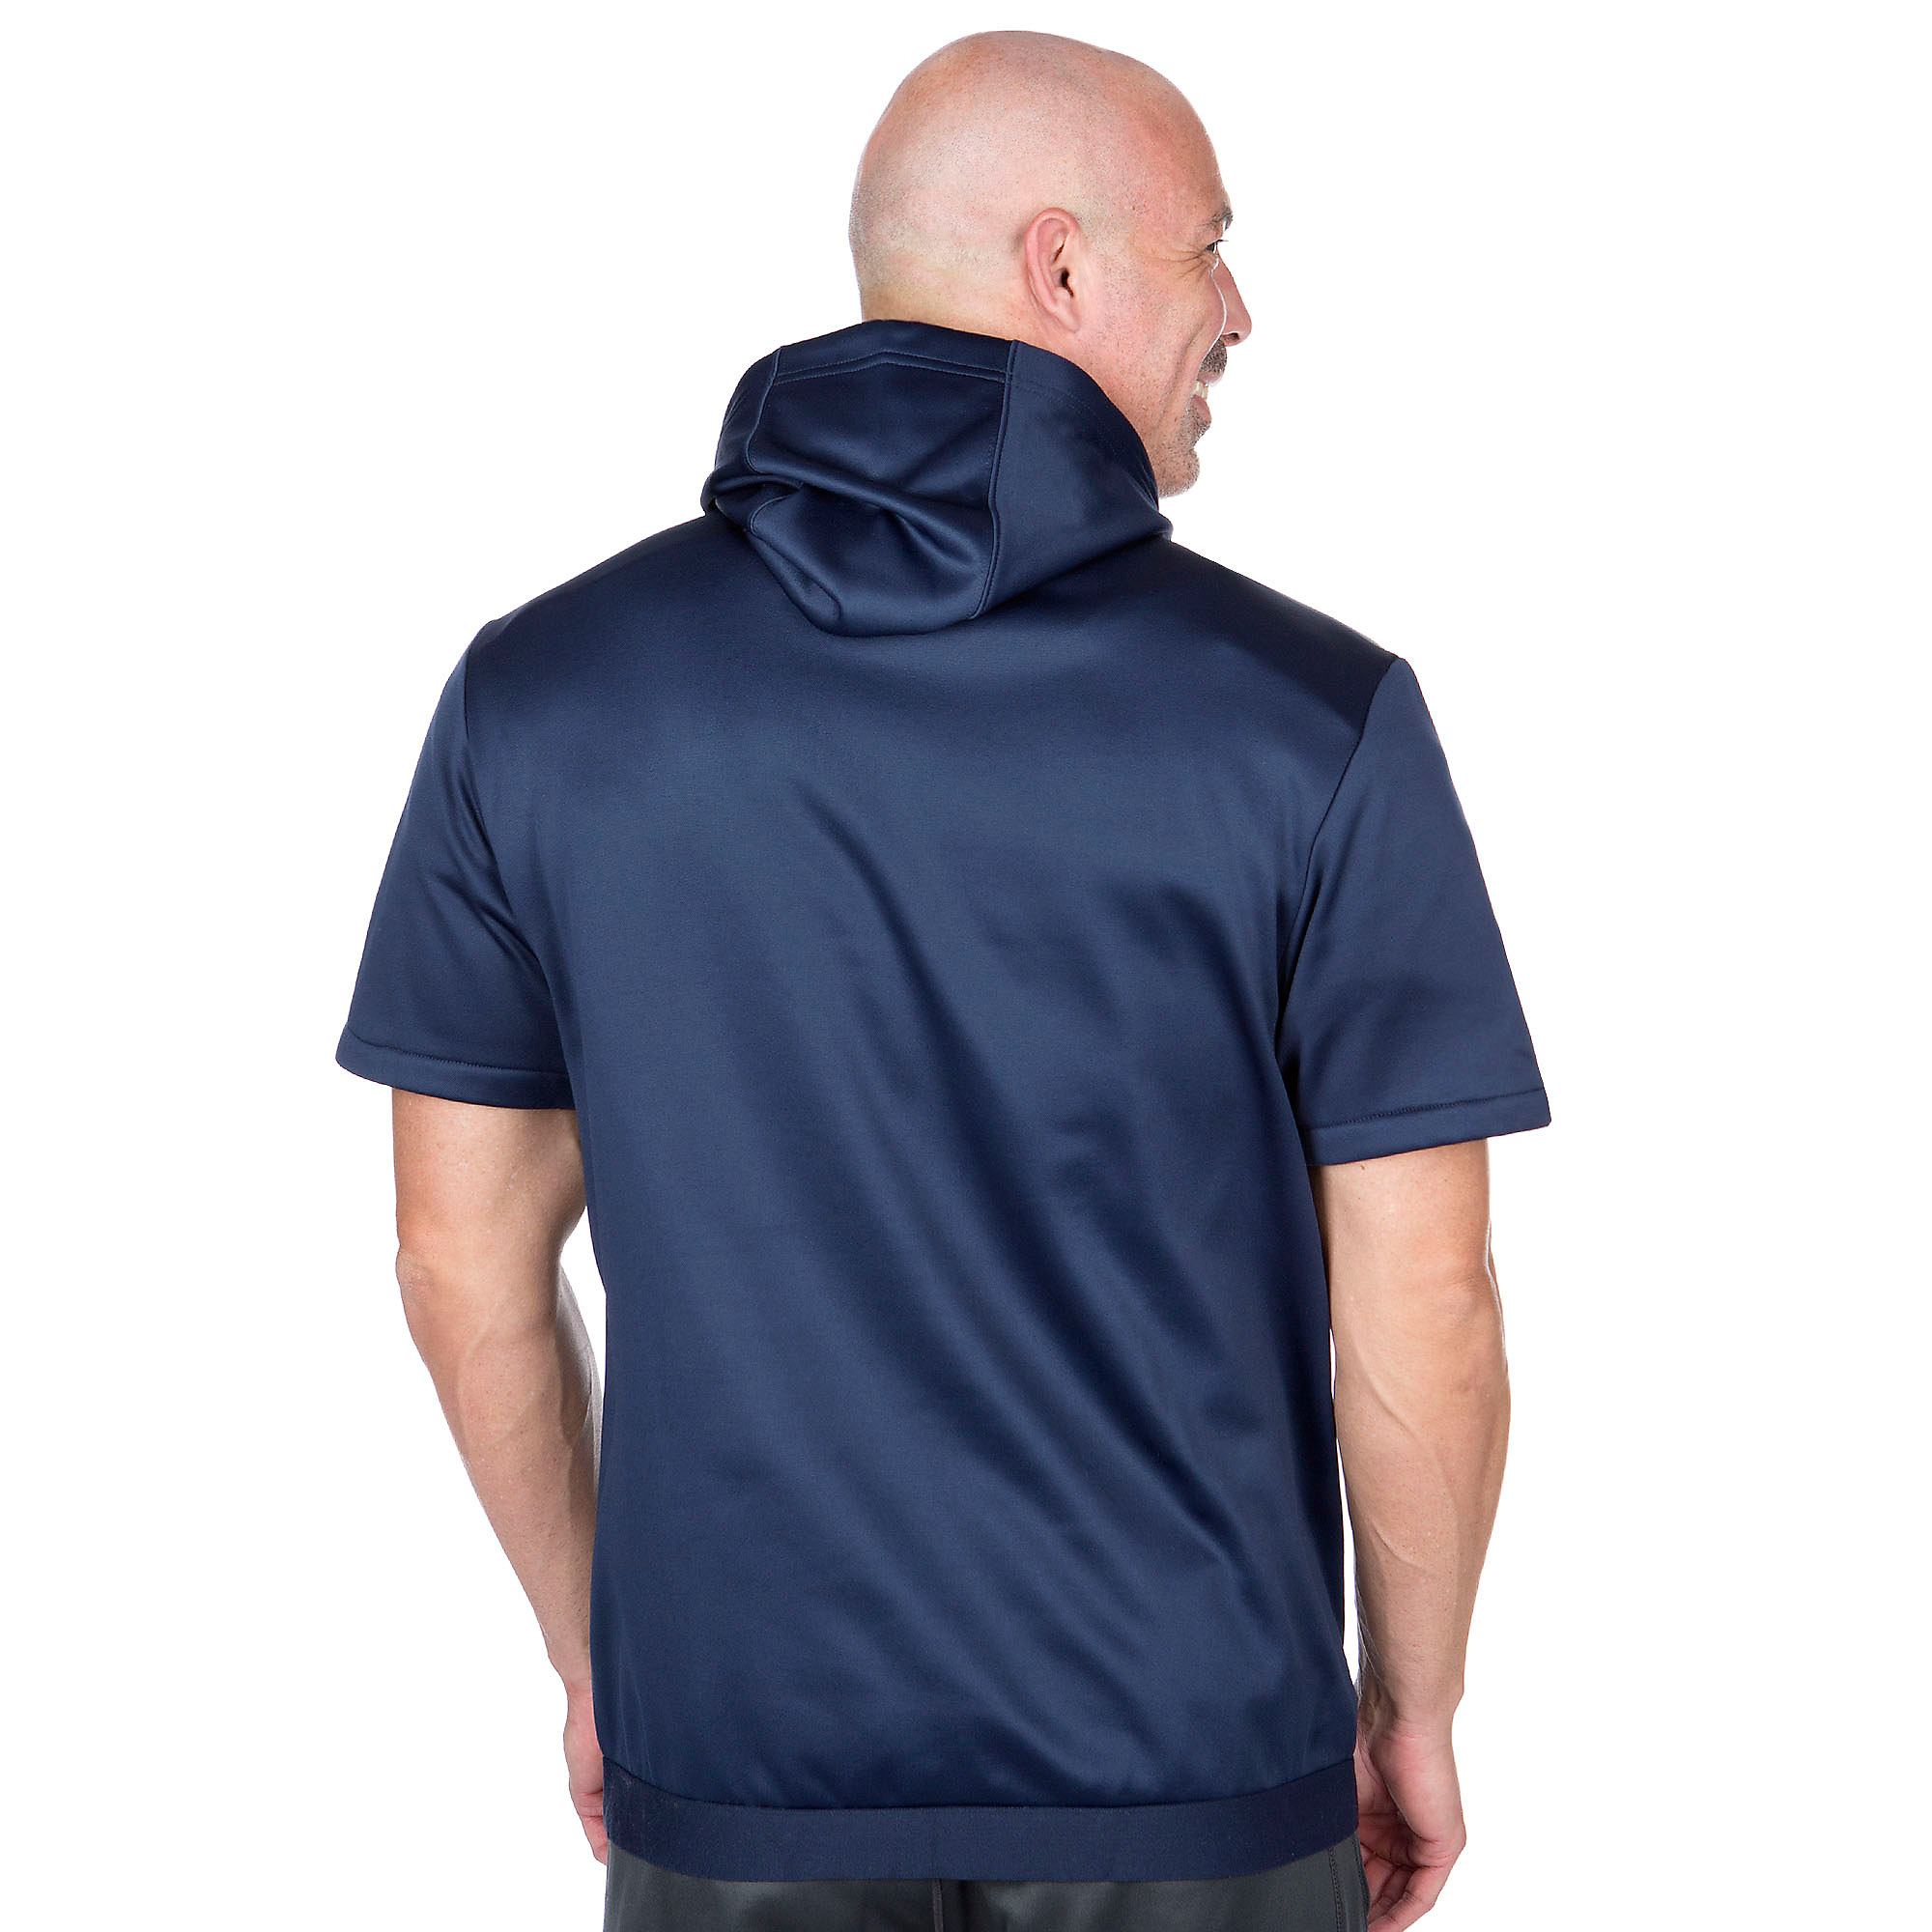 online store 586a8 698e2 Dallas Cowboys Nike Fly Short Sleeve Hoody   Fans United